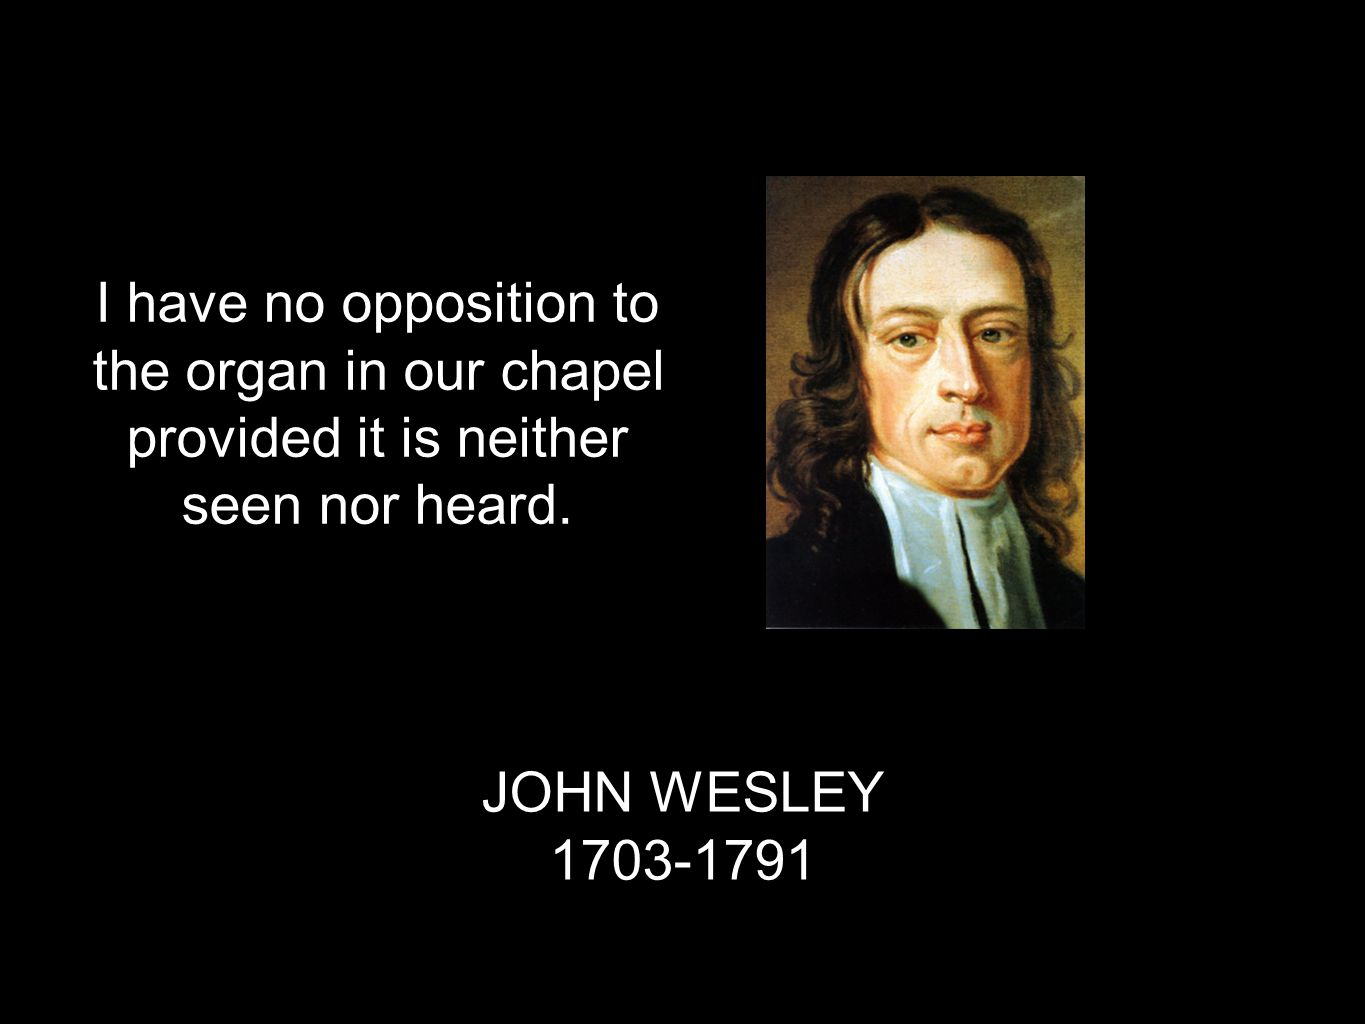 JOHN WESLEY 1703-1791 I have no opposition to the organ in our chapel provided it is neither seen nor heard.